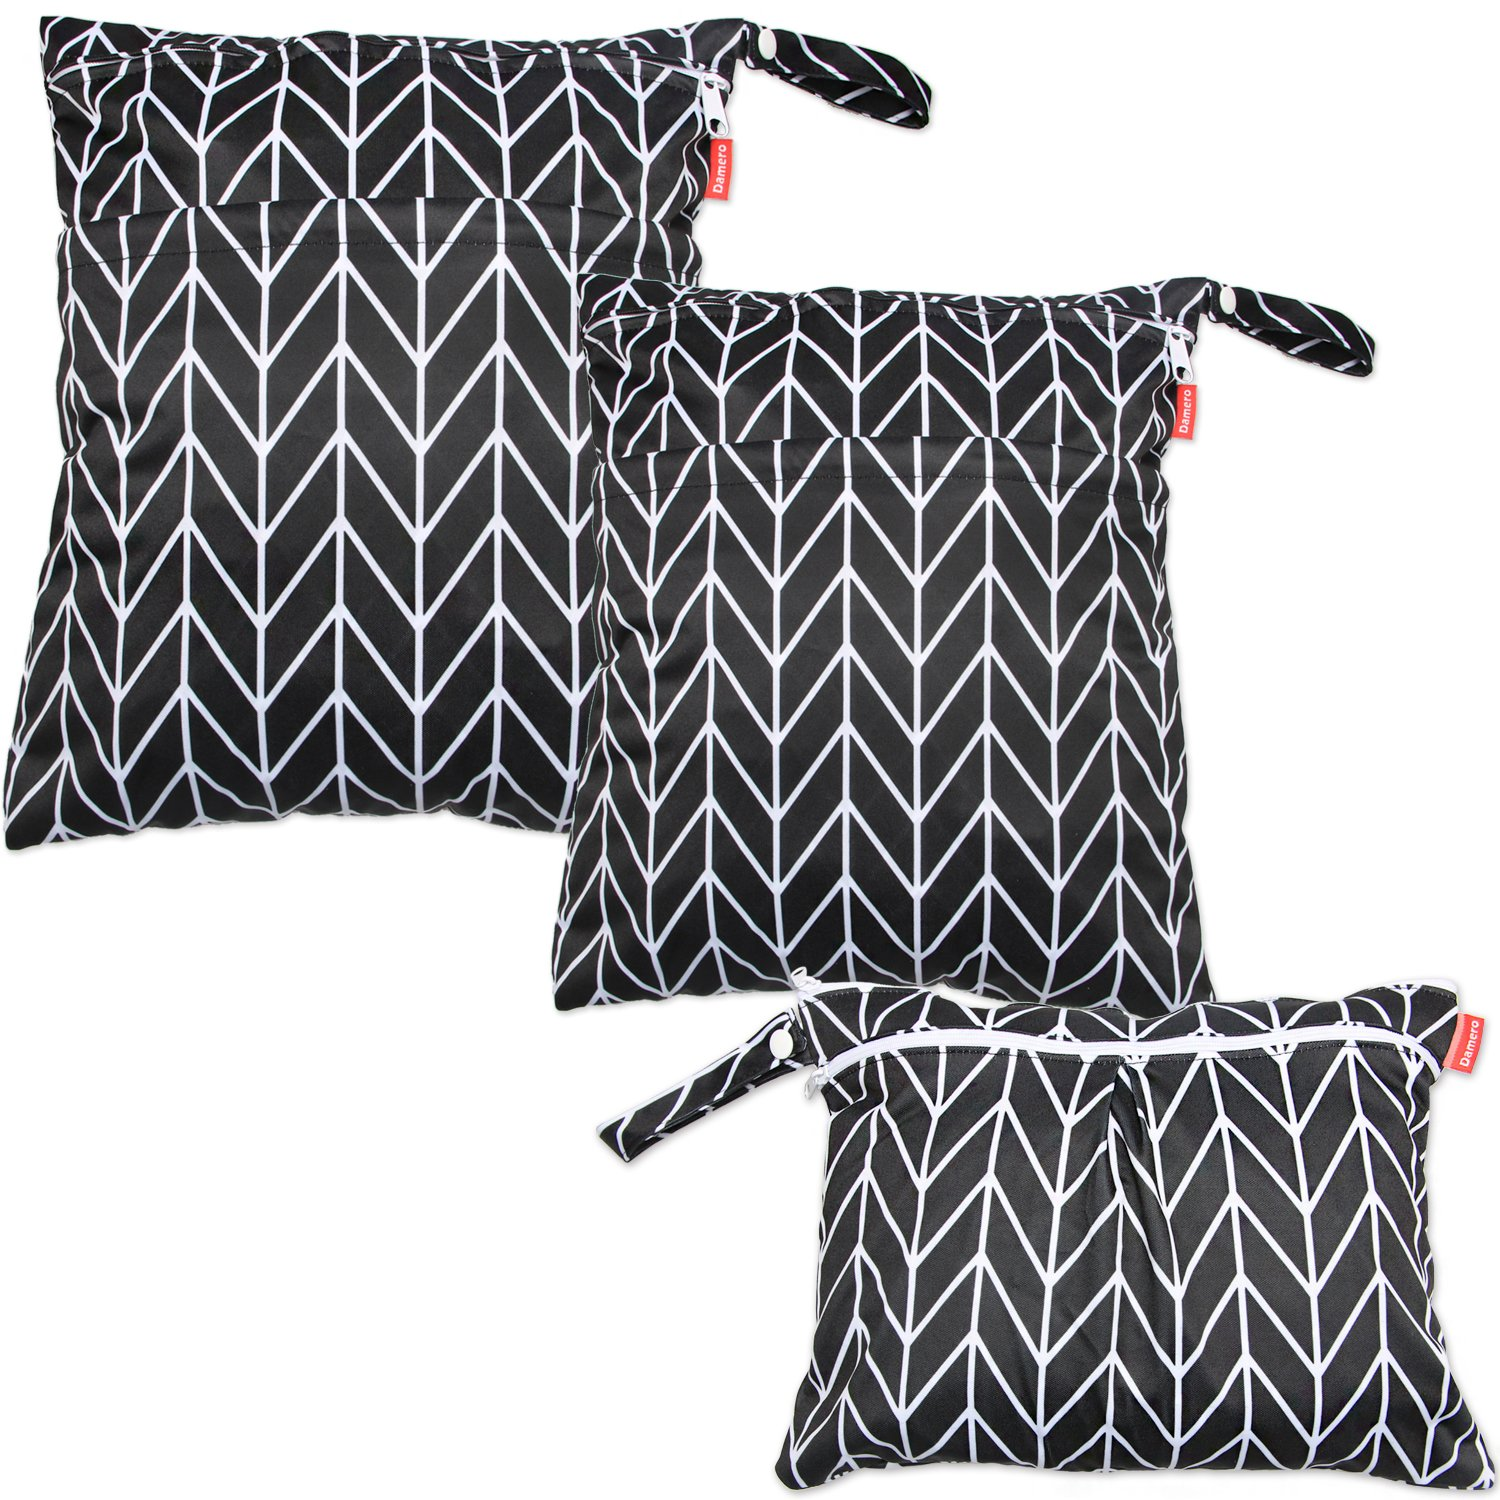 Damero 3pcs Travel Wet and Dry Bag with Handle for Cloth Diaper, Pumping Parts, Clothes, Swimsuit and More, Easy to Grab and Go, Black Arrows by Damero